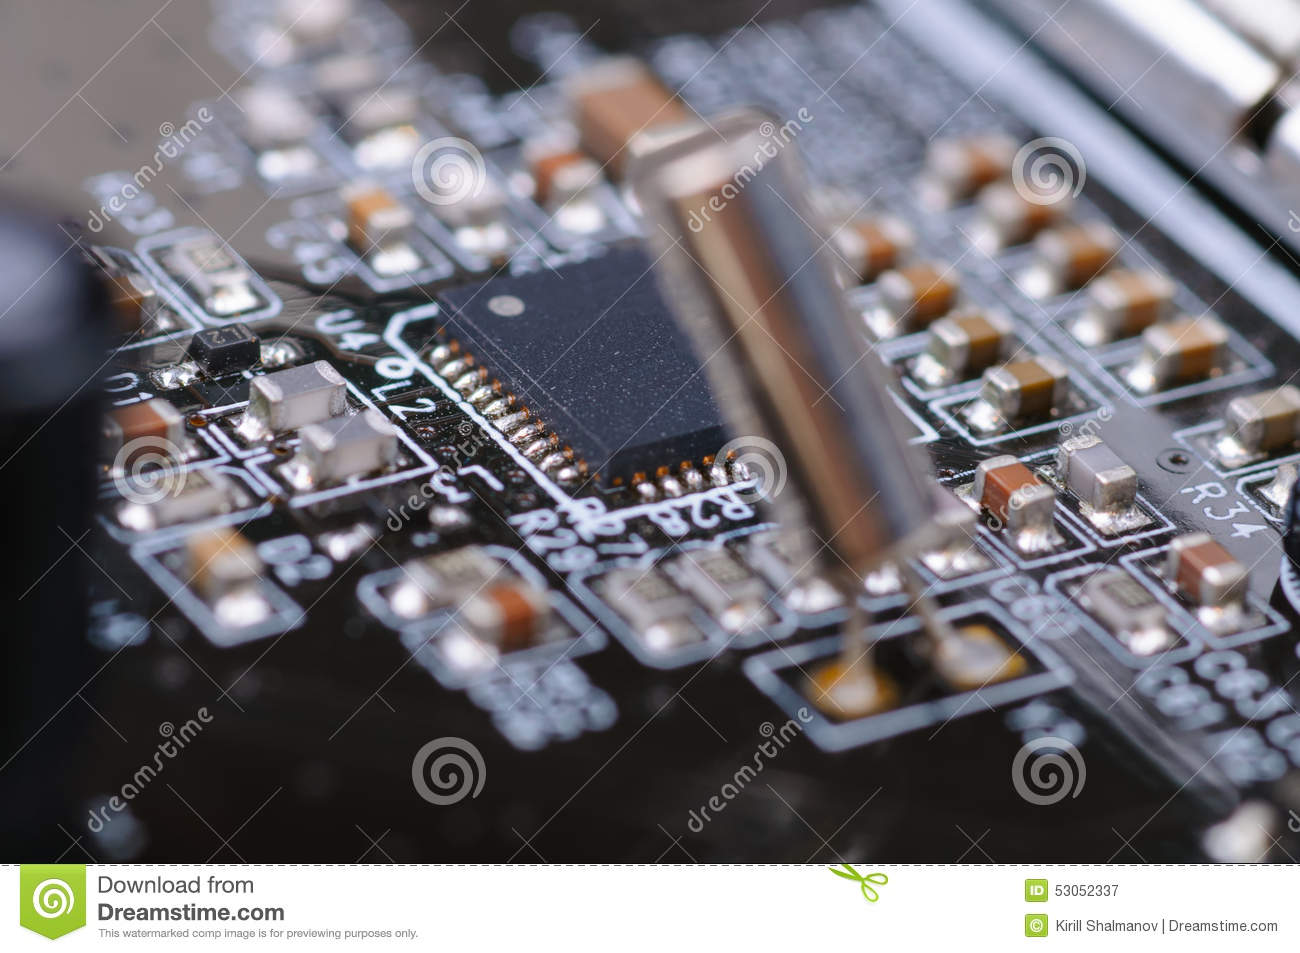 Electronic Pcb Stock Image Of Equipment Contact 53052337 Computer Circuit Board With Electronics Components Royalty Free Photo